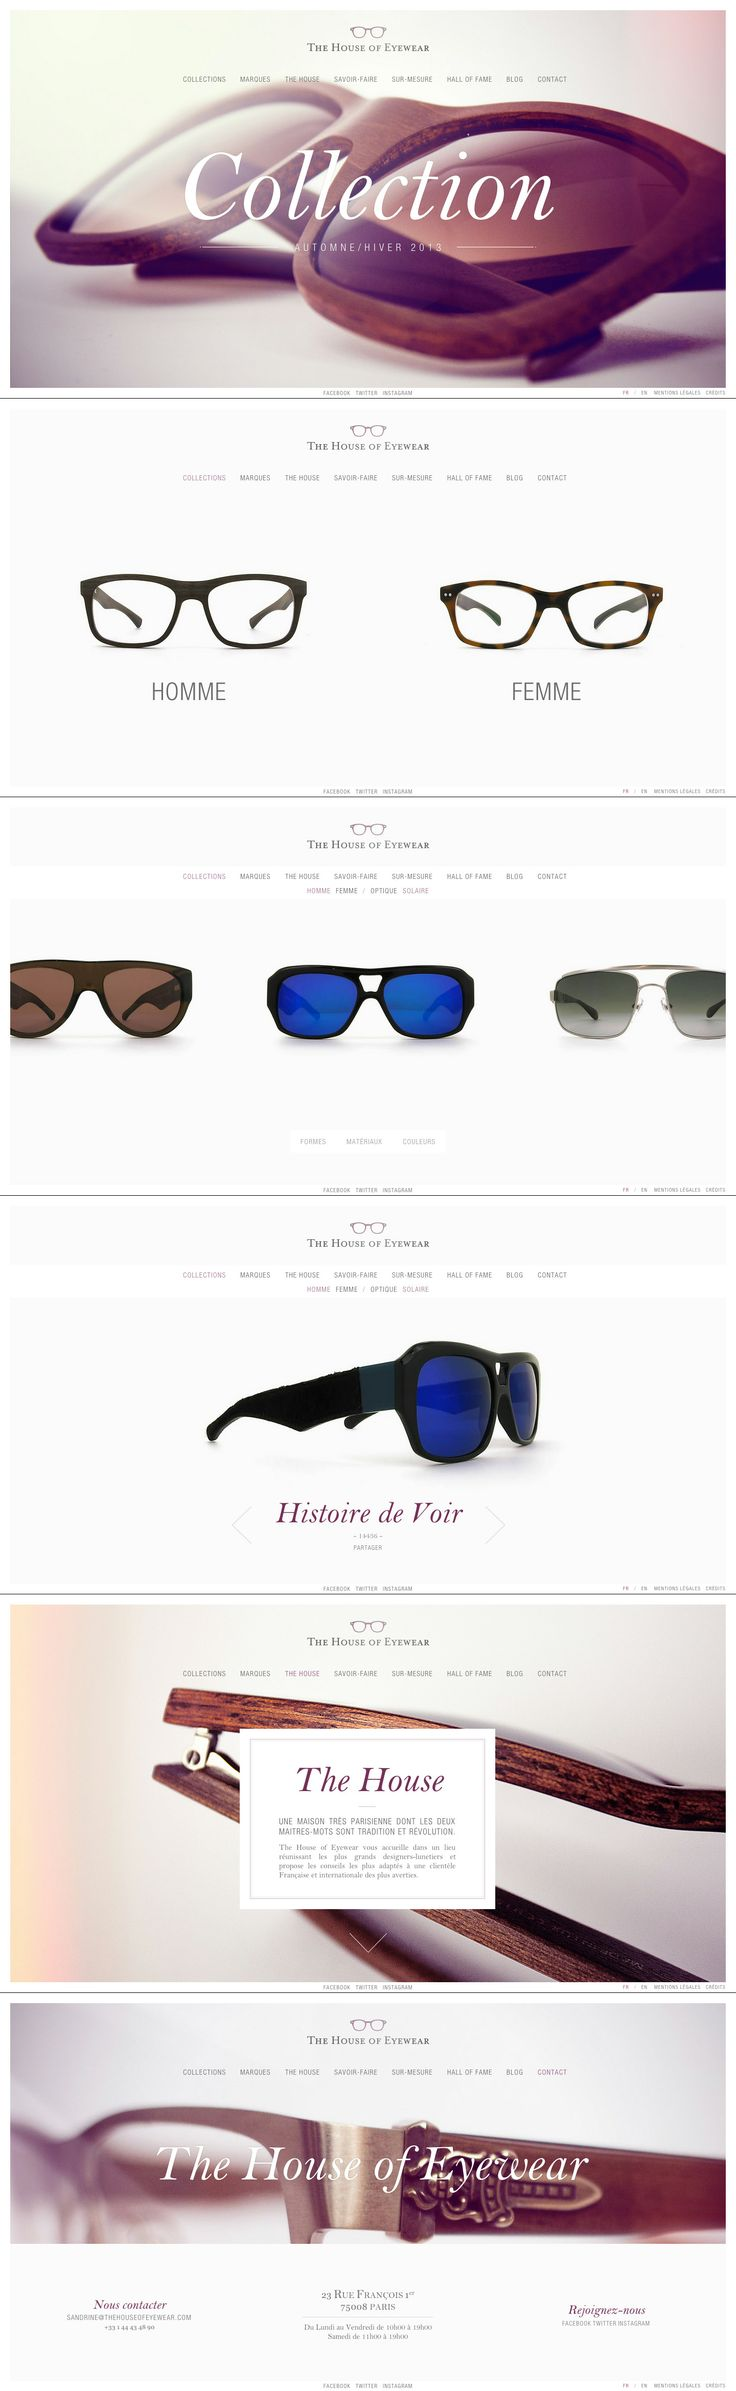 The House of Eyewear \\ Such a beautiful & clean website. http://thehouseofeyewear.spellwood.fr